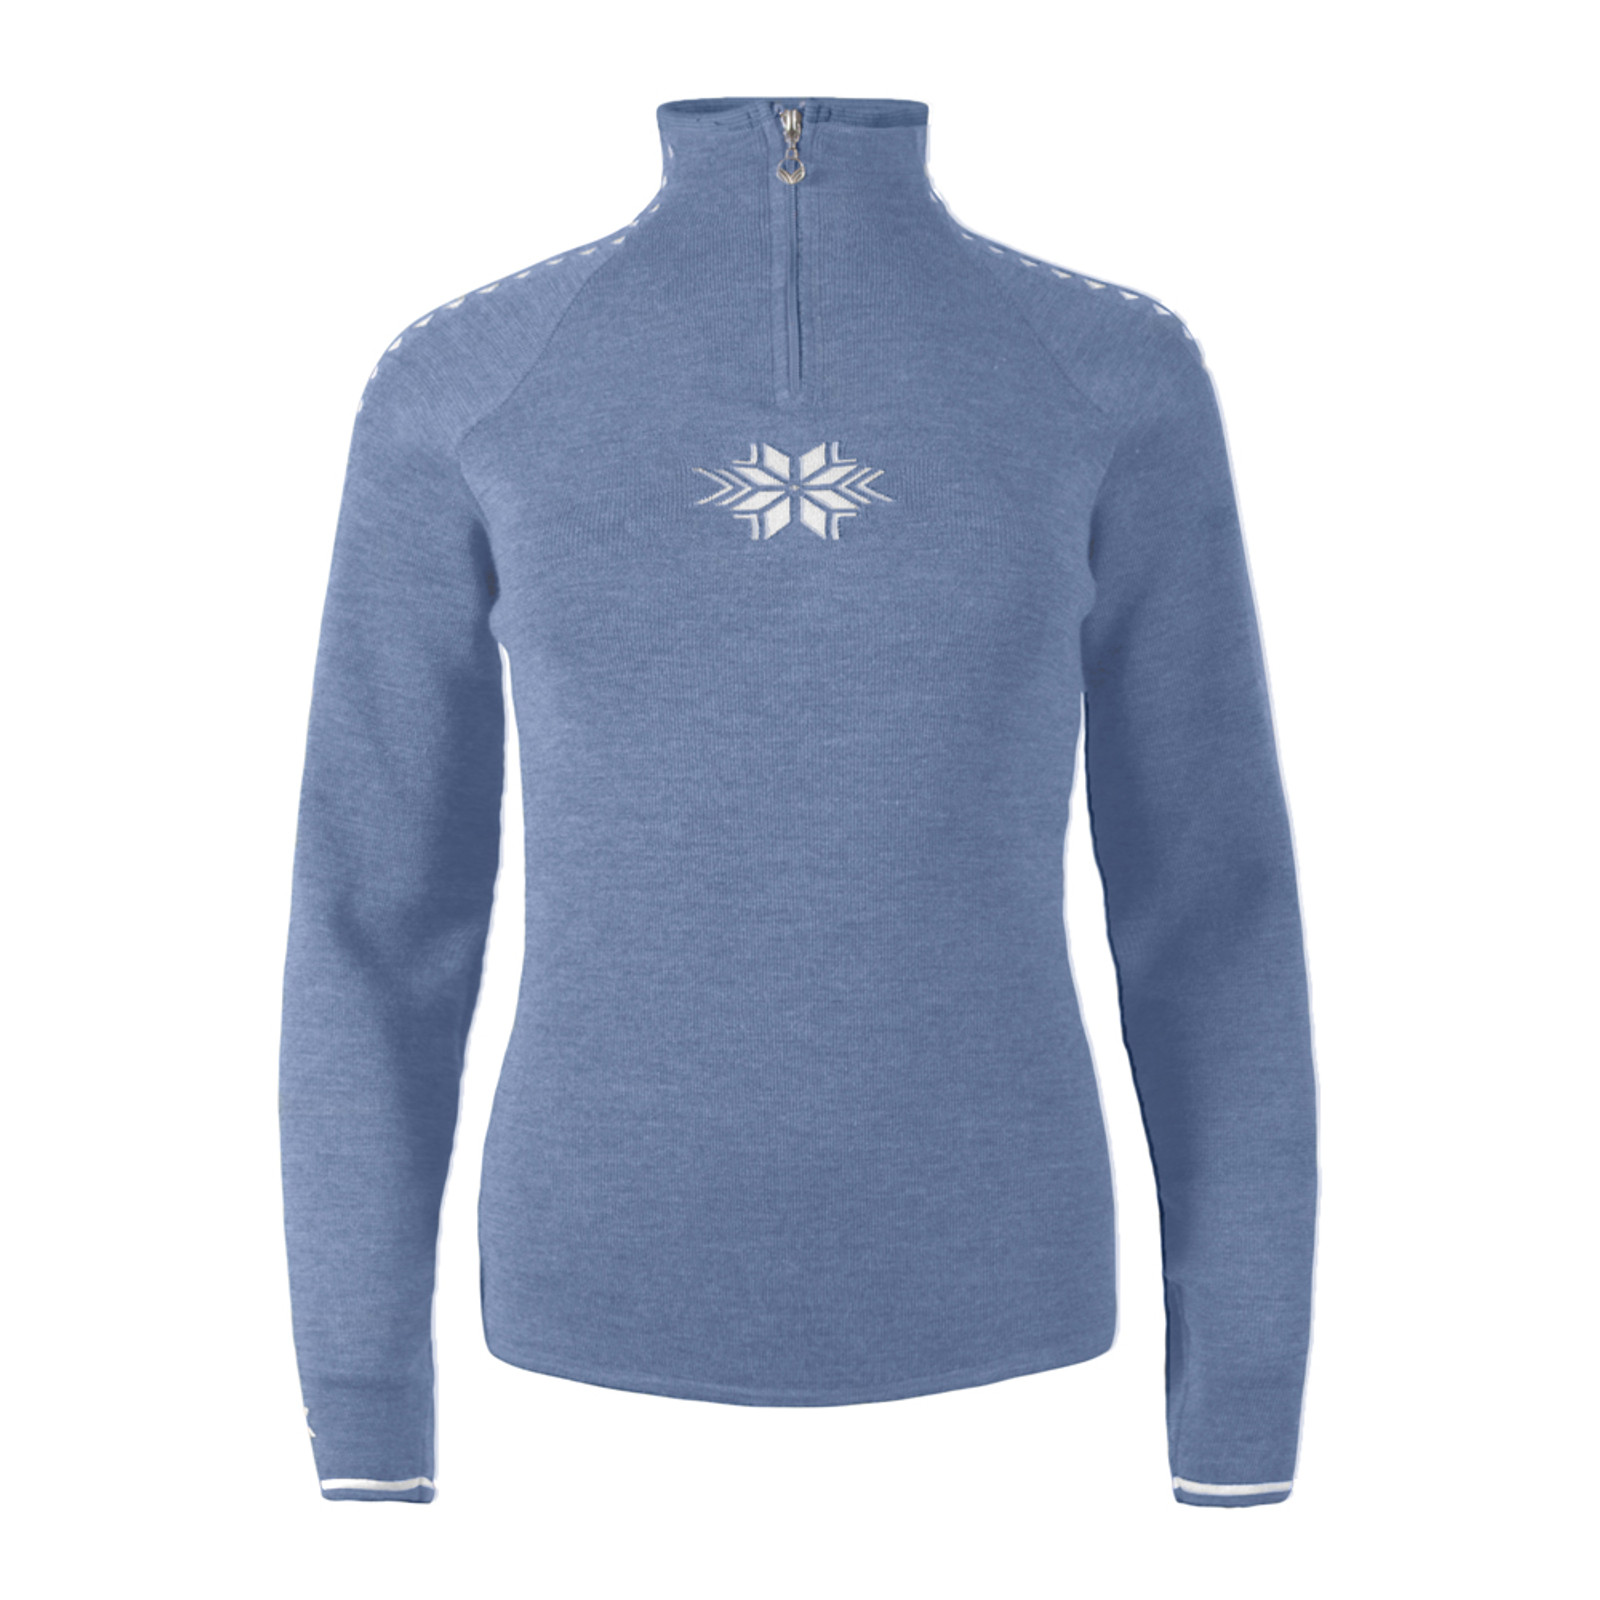 Ladies Dale of Norway Geilo Sweater in Blue Shadow/Off White, 82311-D